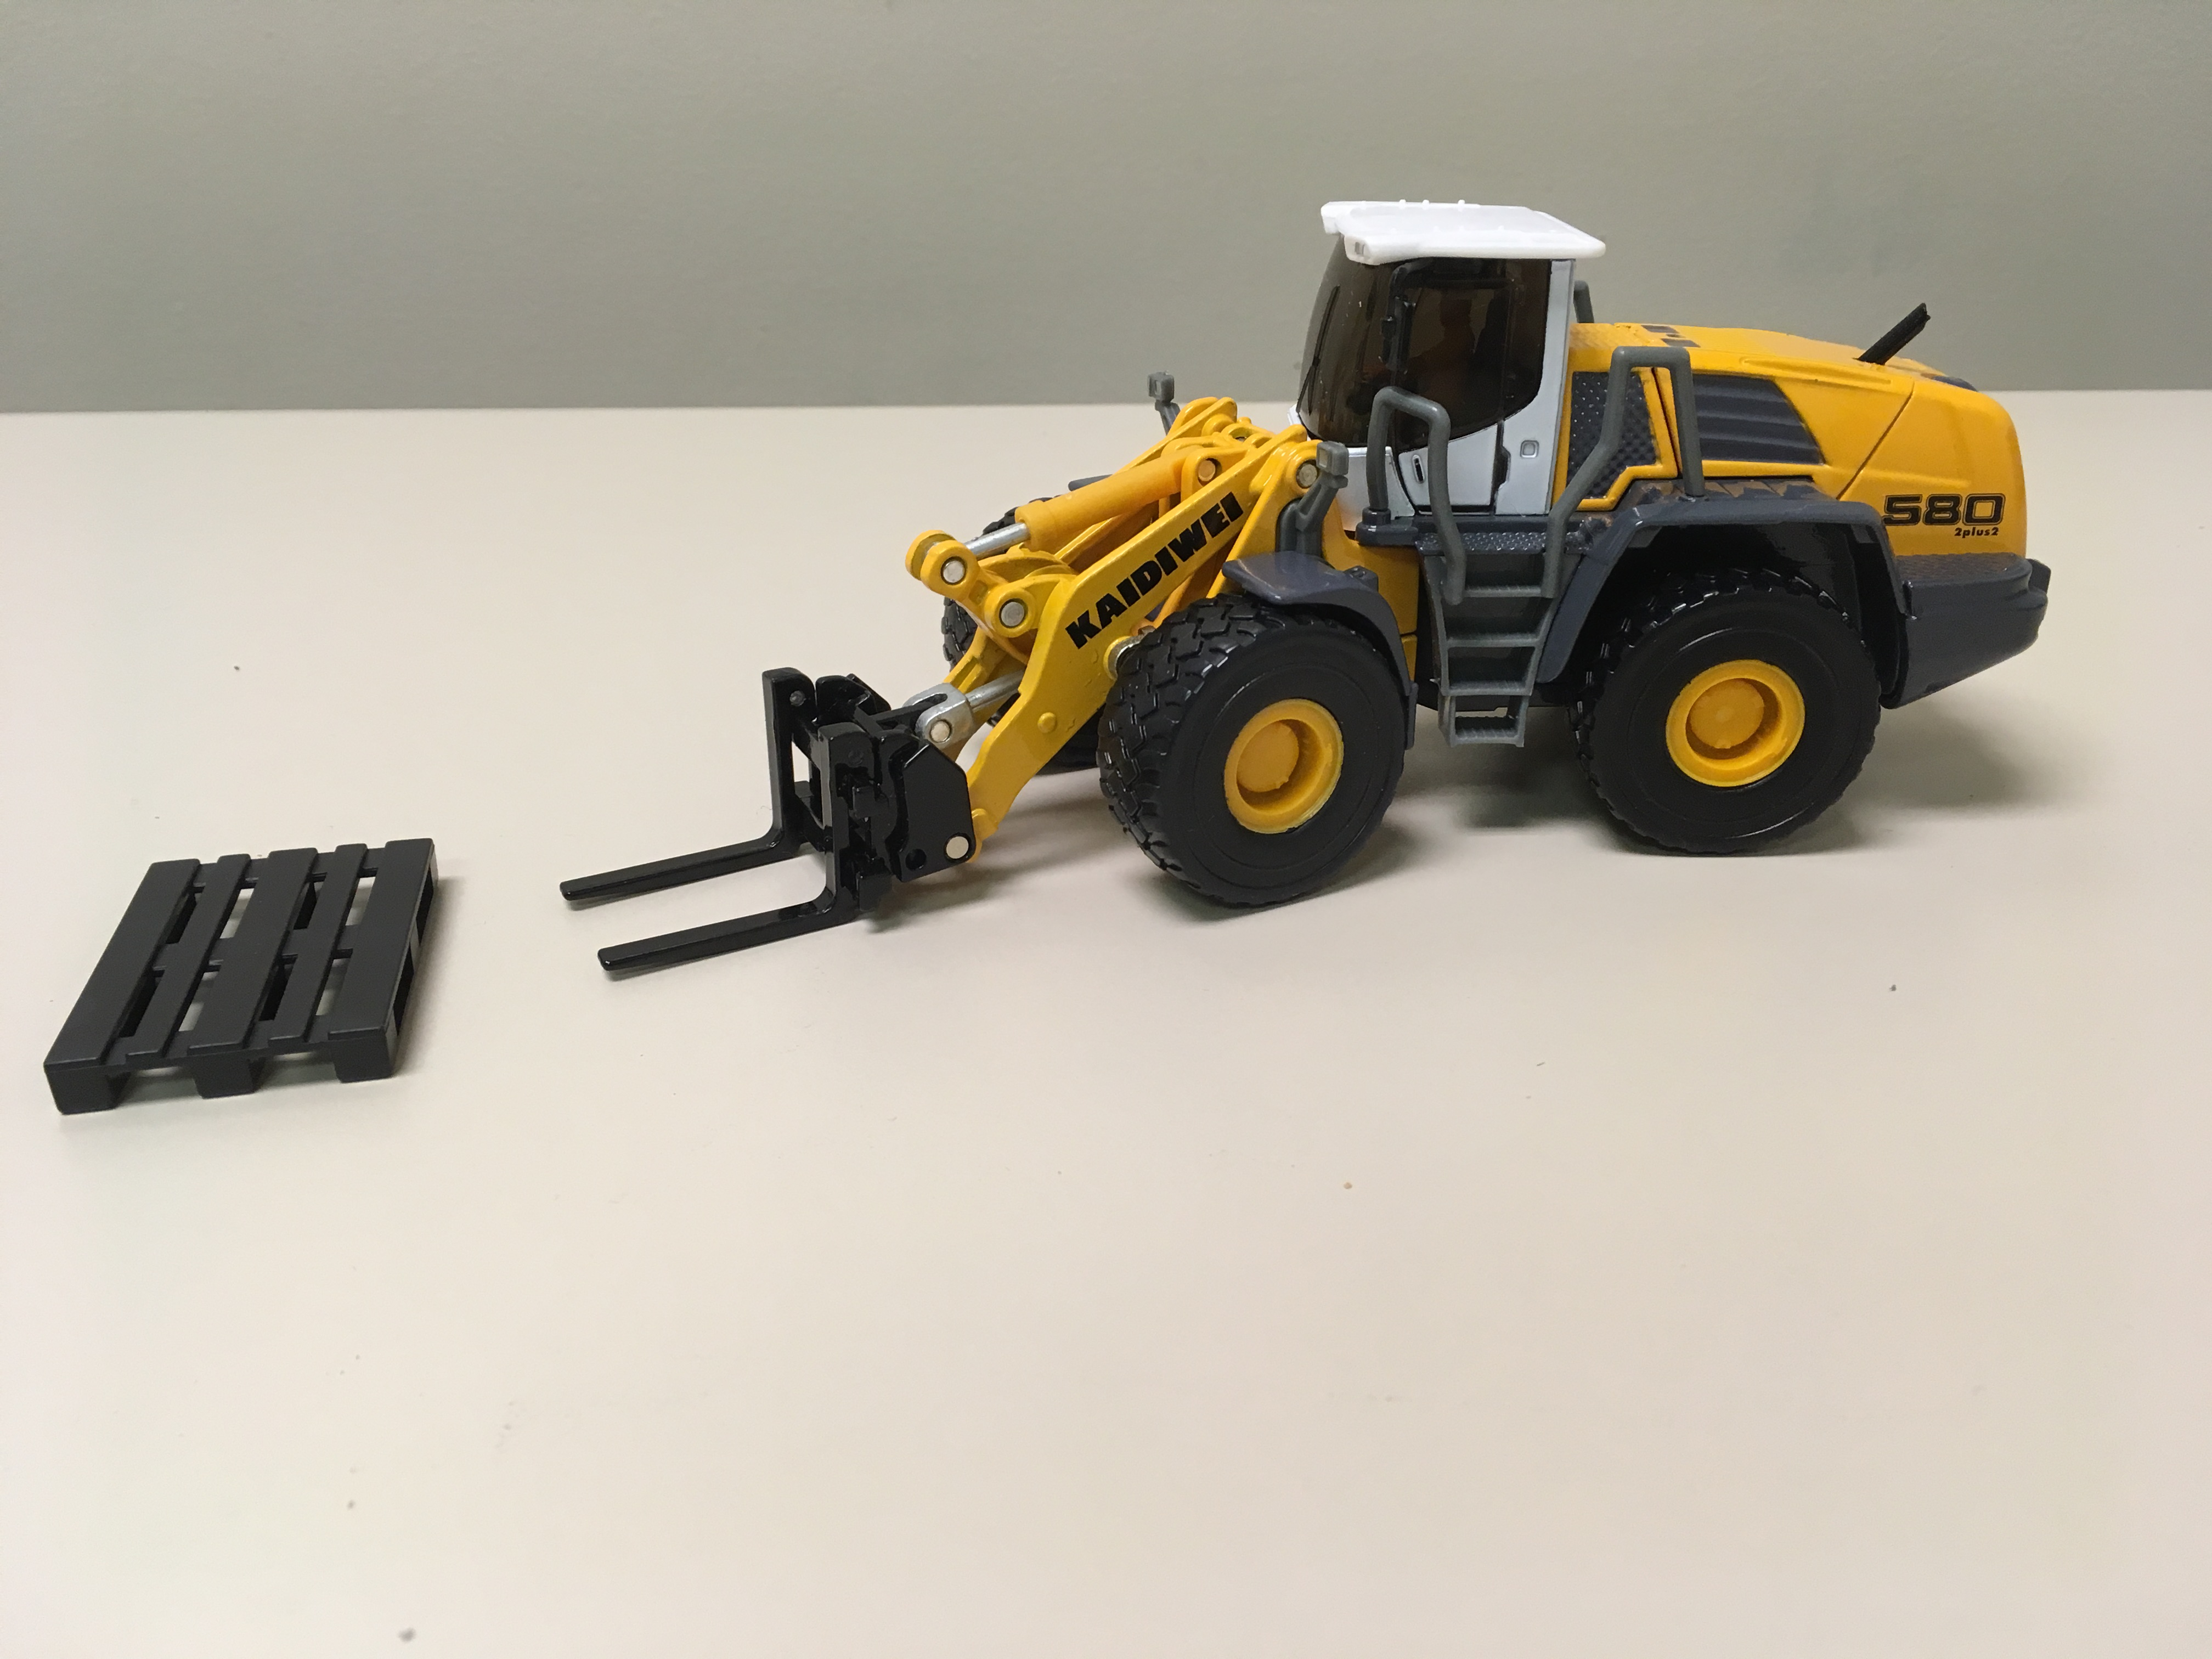 New Die Cast Metal Online Only Construction Gear From